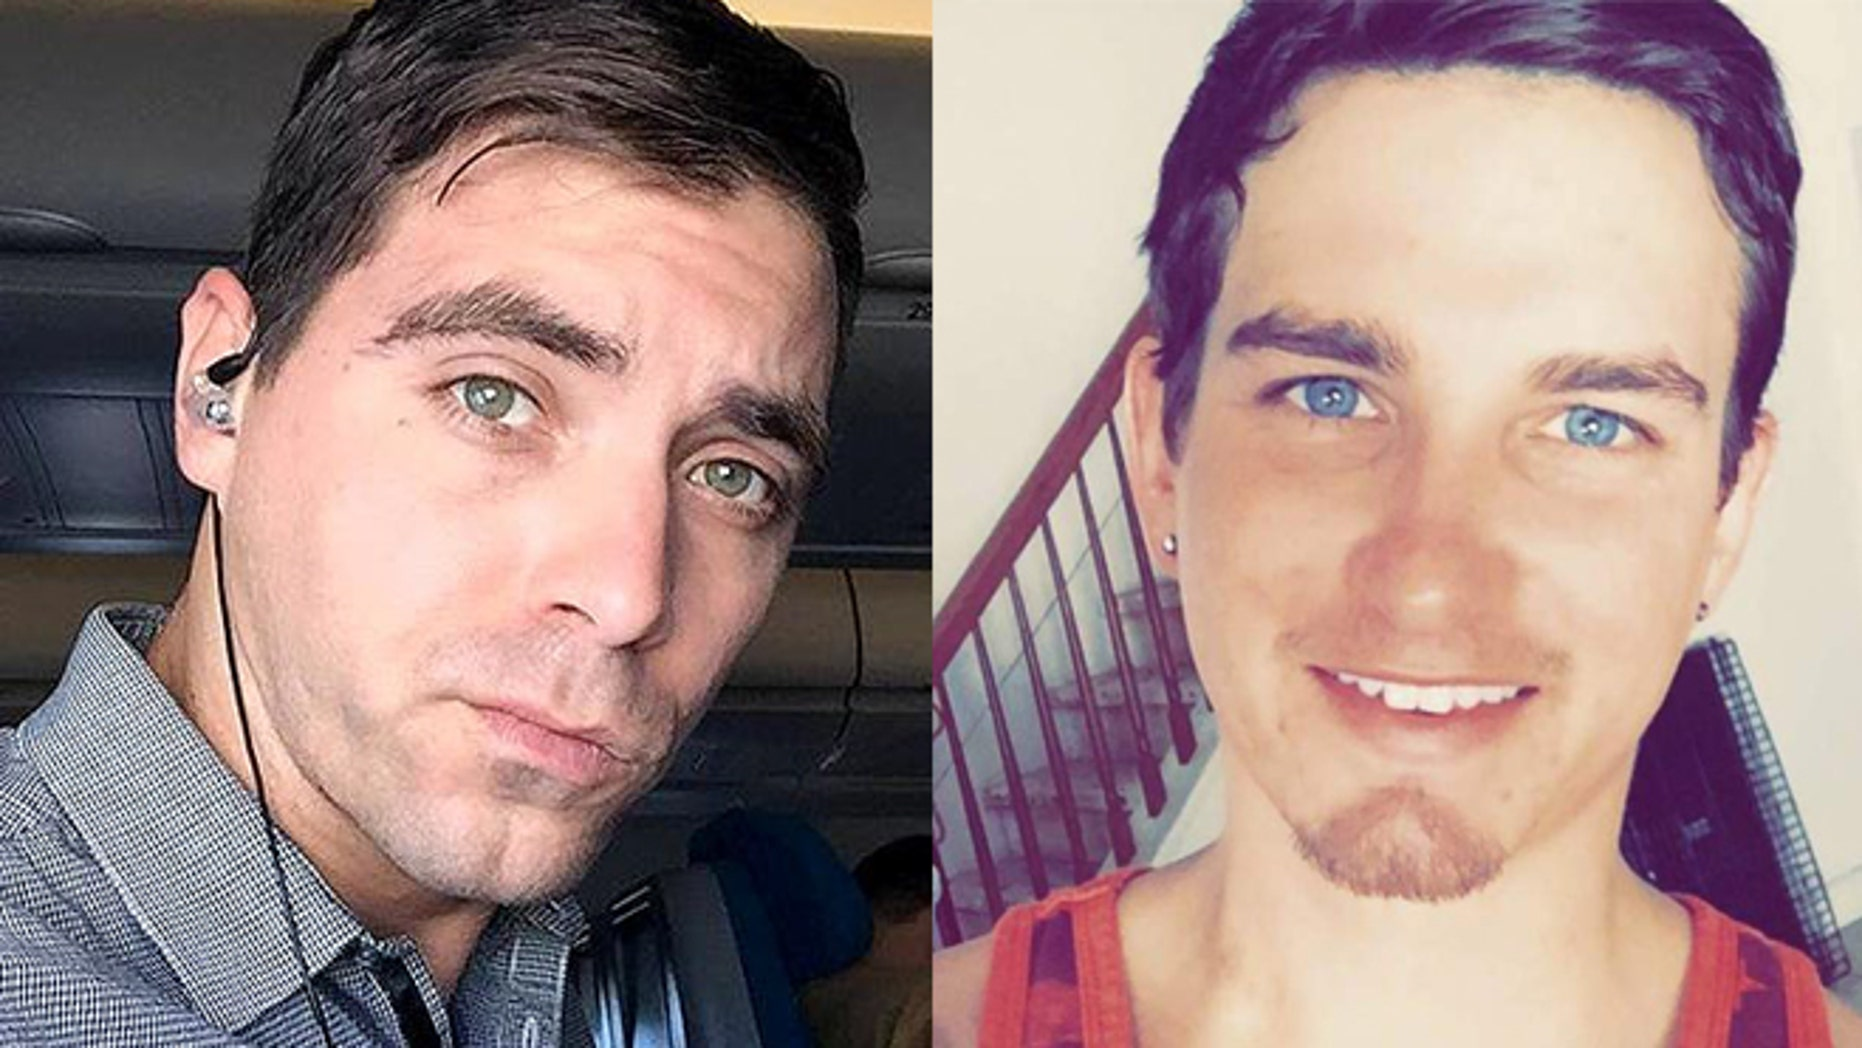 Edward Sotomayor Jr. (left) and Joshua McGill, two heroes of the Pulse Orlando massacre who suffered different fates. (Photos: via Facebook)